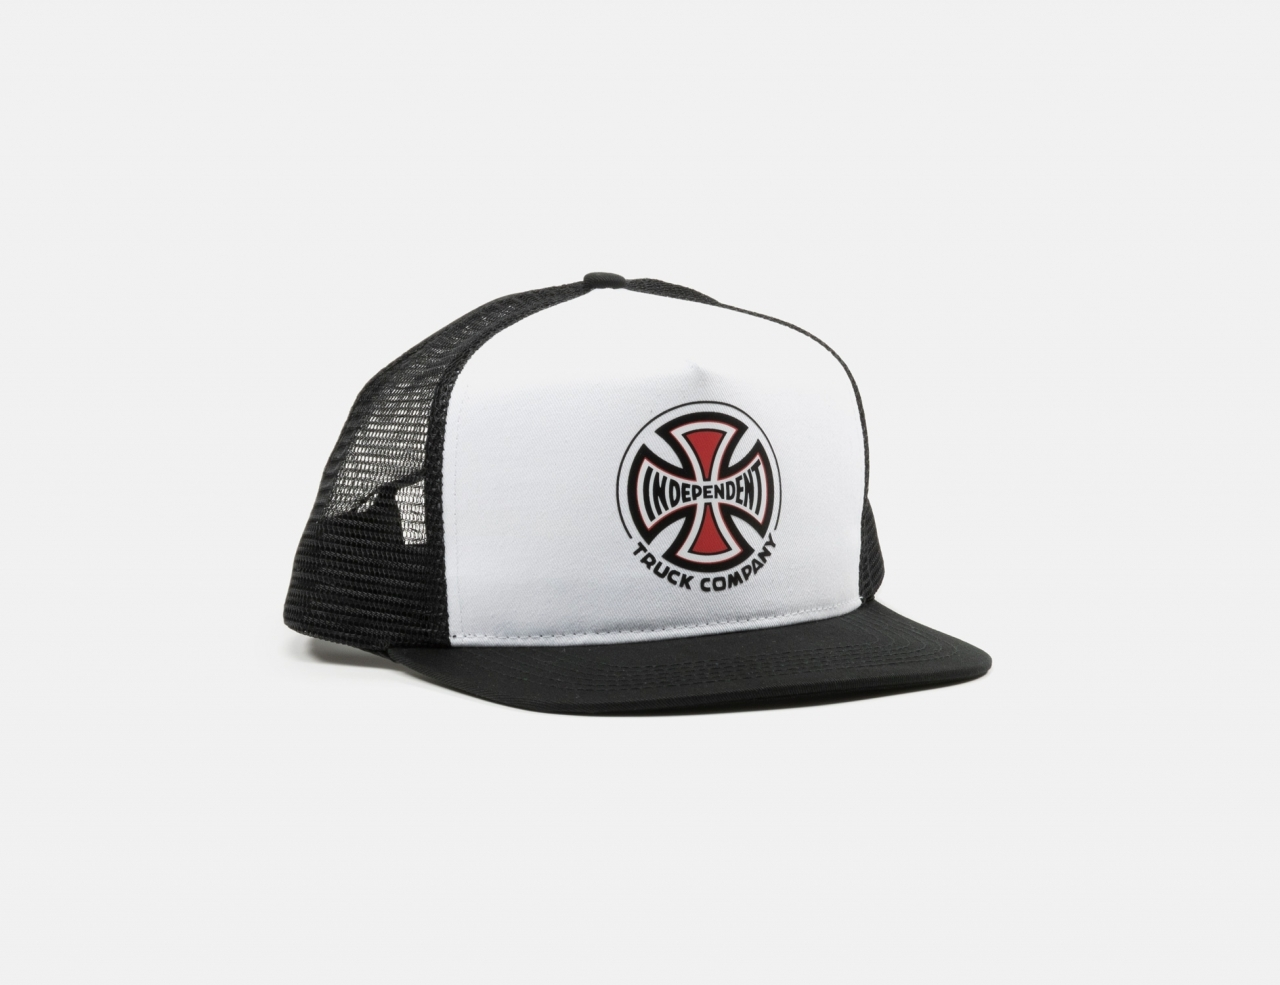 Independent Truck Co Mesh Cap - White / Black